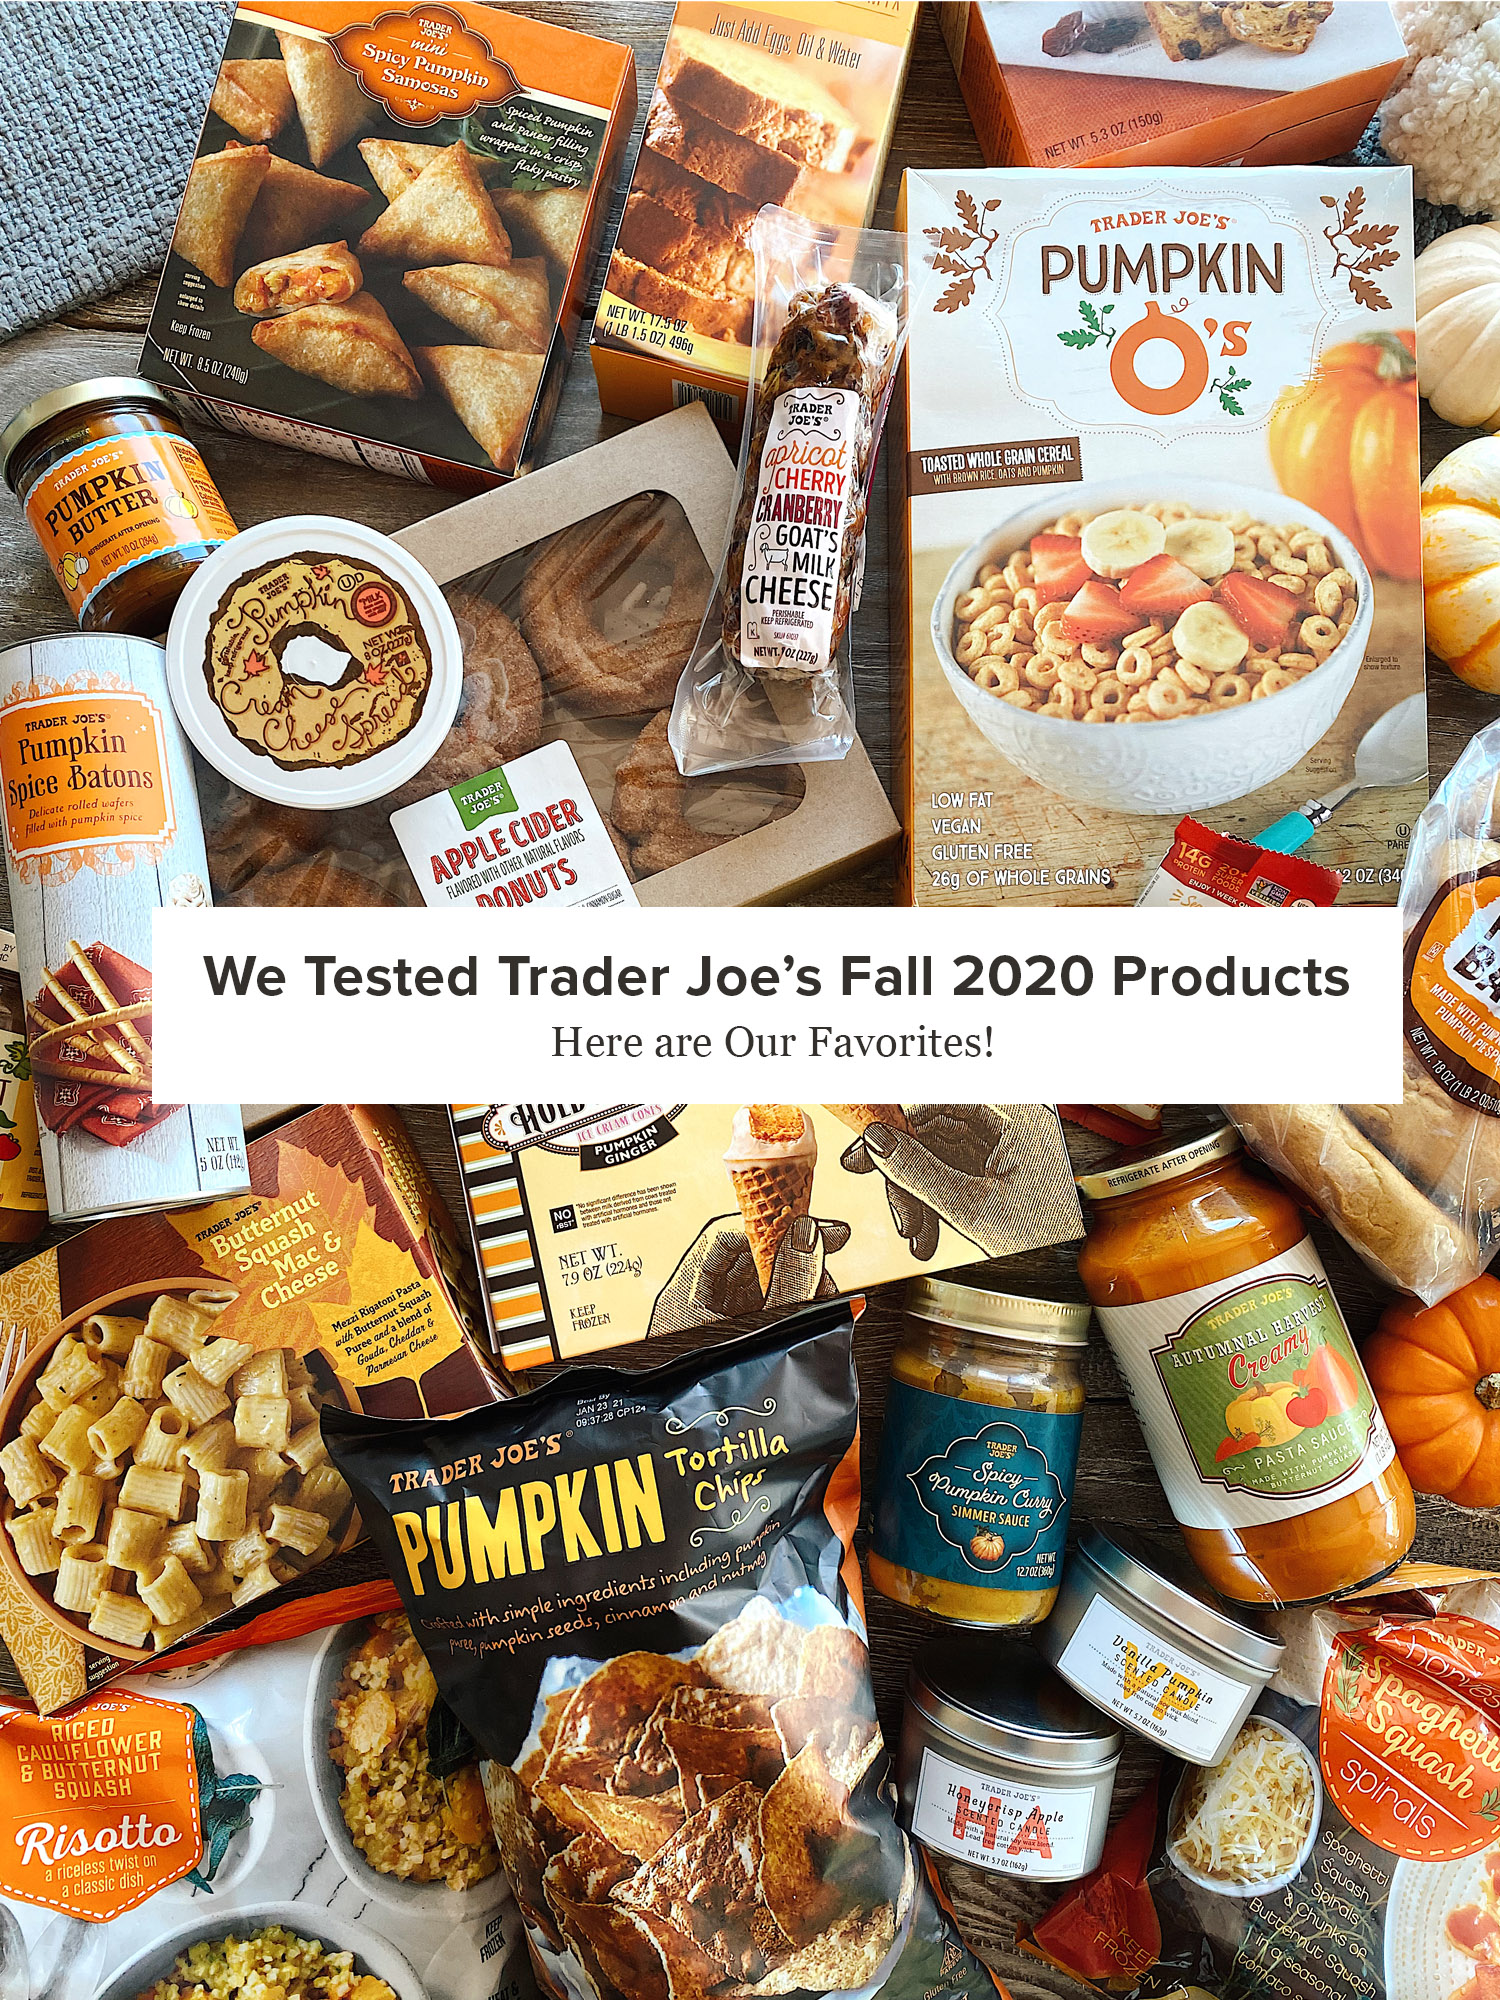 We Tested Trader Joe's Fall 2020 Products — Here are Our Favorites!